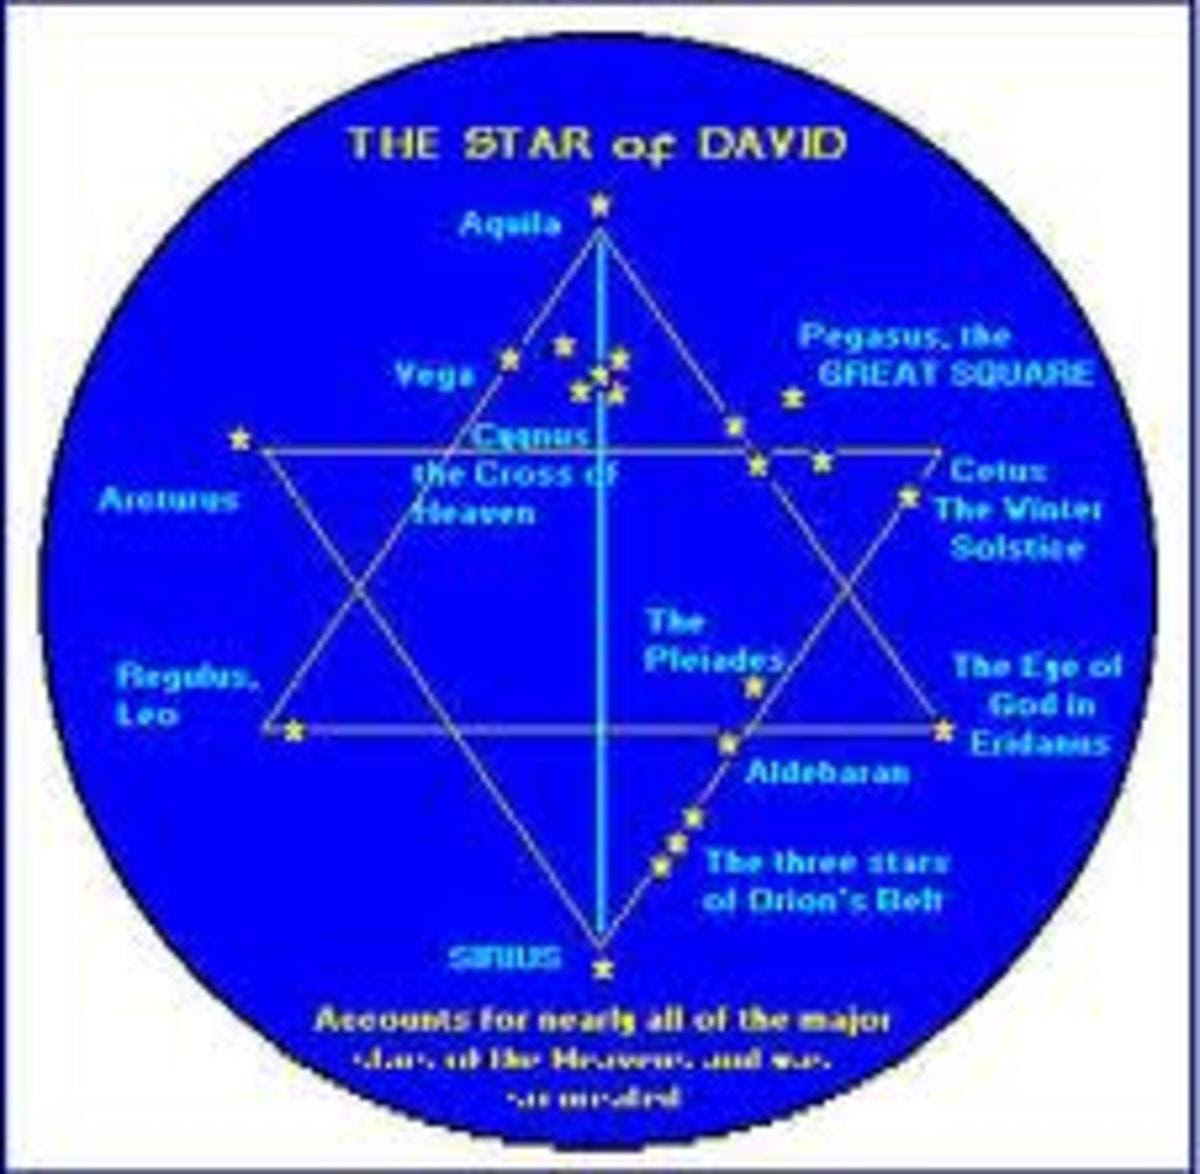 6 pointed star with the 7th being the middle. The 12 constellations with 13 in the middle, the Octagon 8 with the 9th in the middle.  Celestial alignments form shapes and numbers, which become symbolic logos in culture, corporations, and religion.